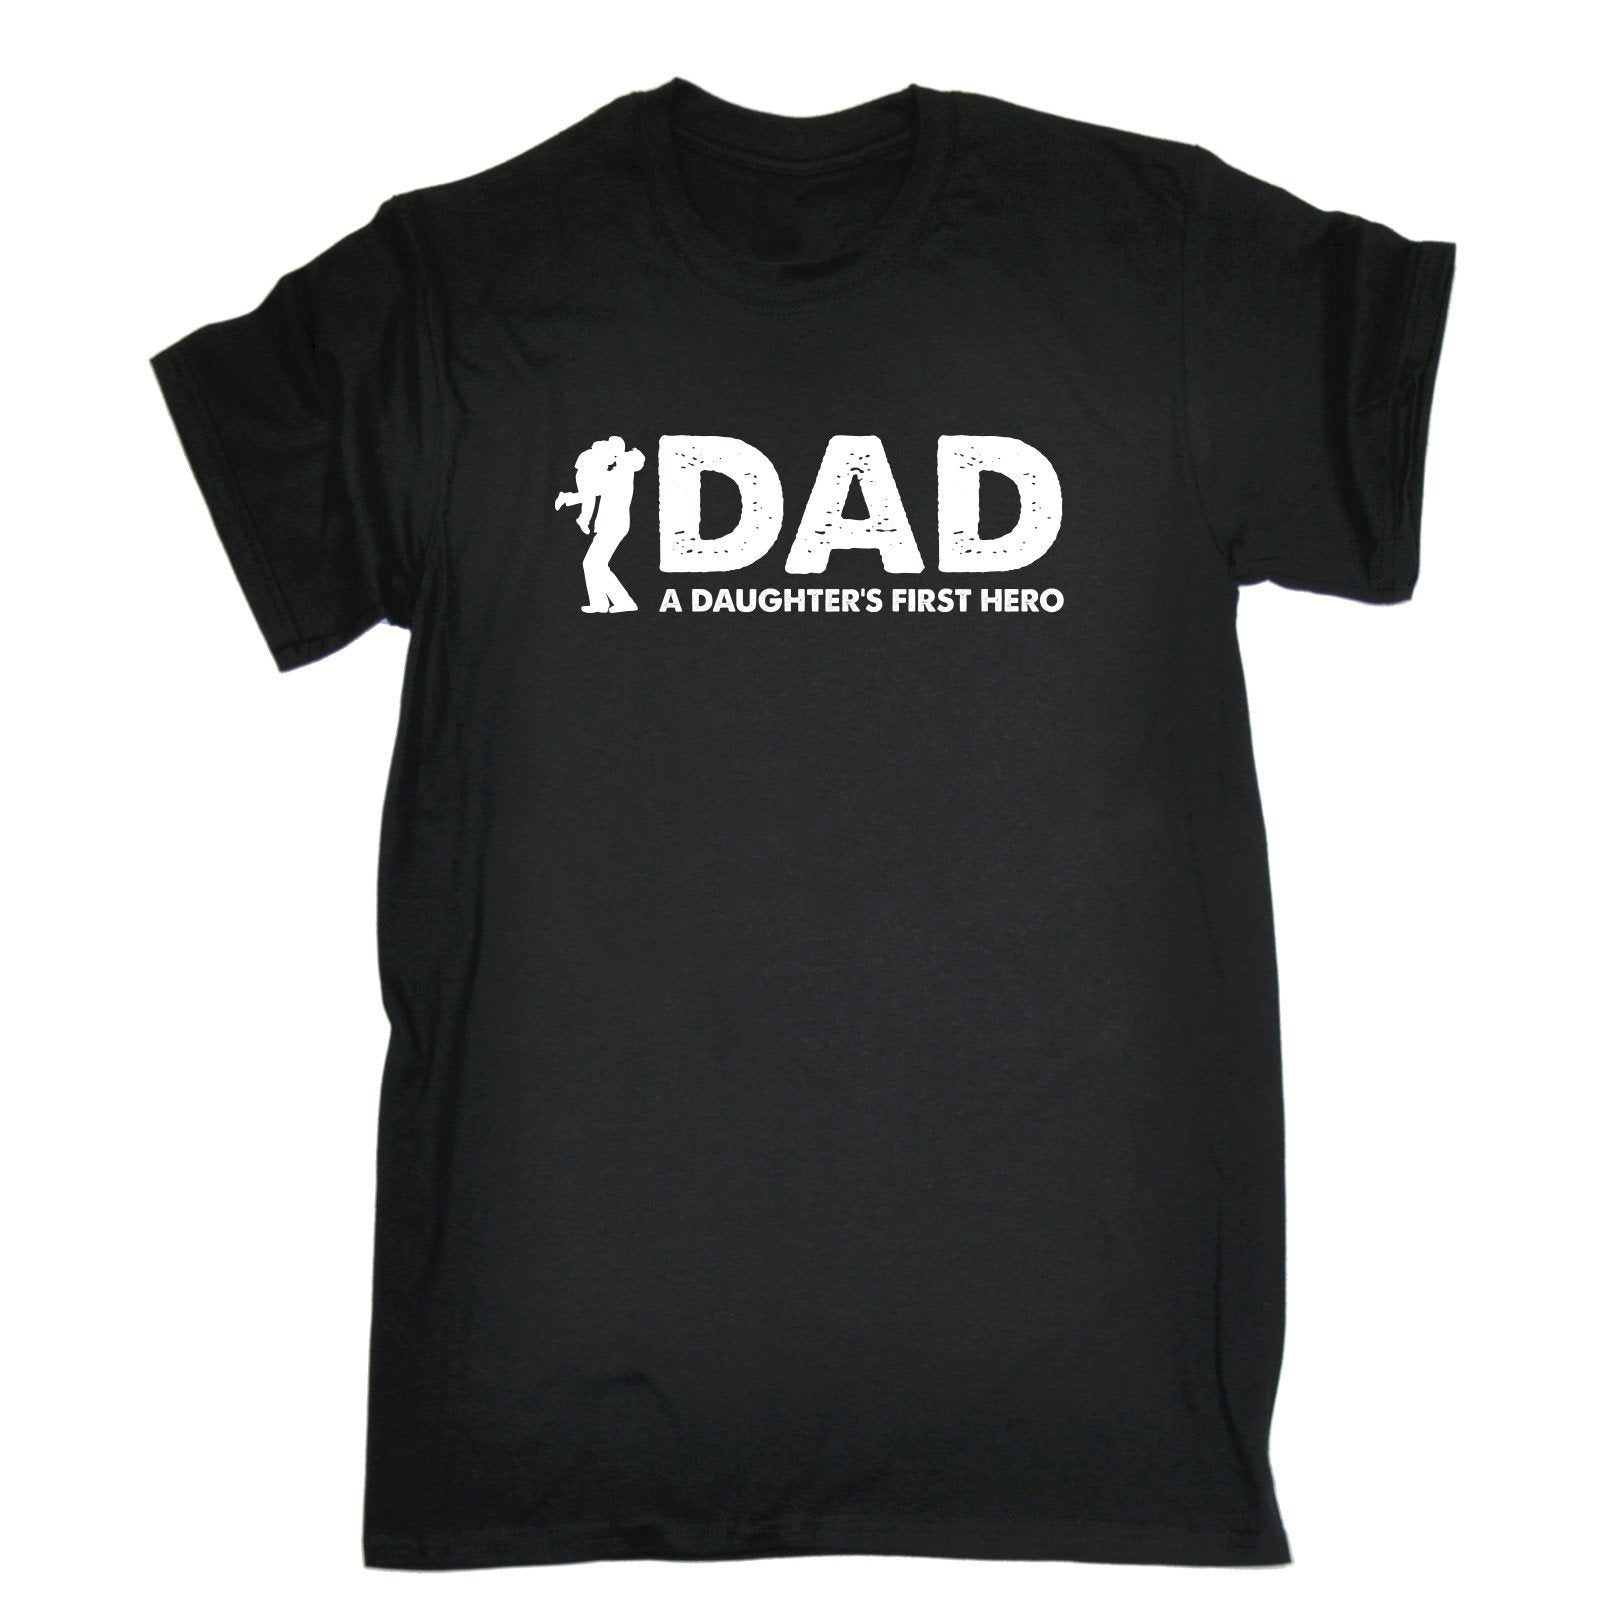 Dad A Daughter's First Hero - Men's T-shirt - Cozzoo